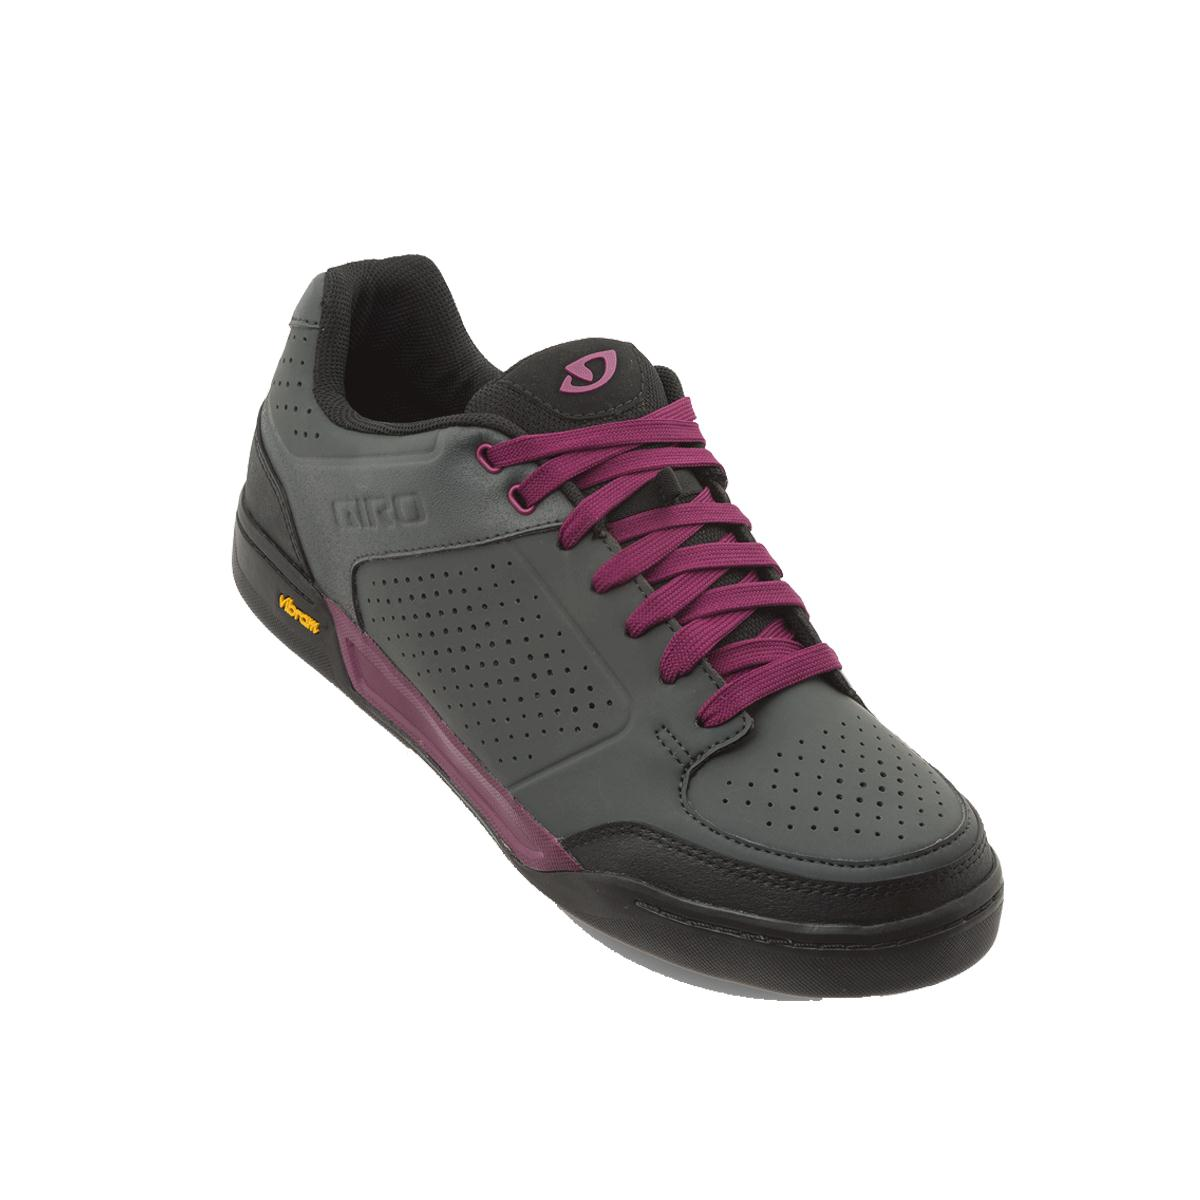 GIRO Riddance Women's MTB Shoe 2018 Dark Shadow / Berry 39